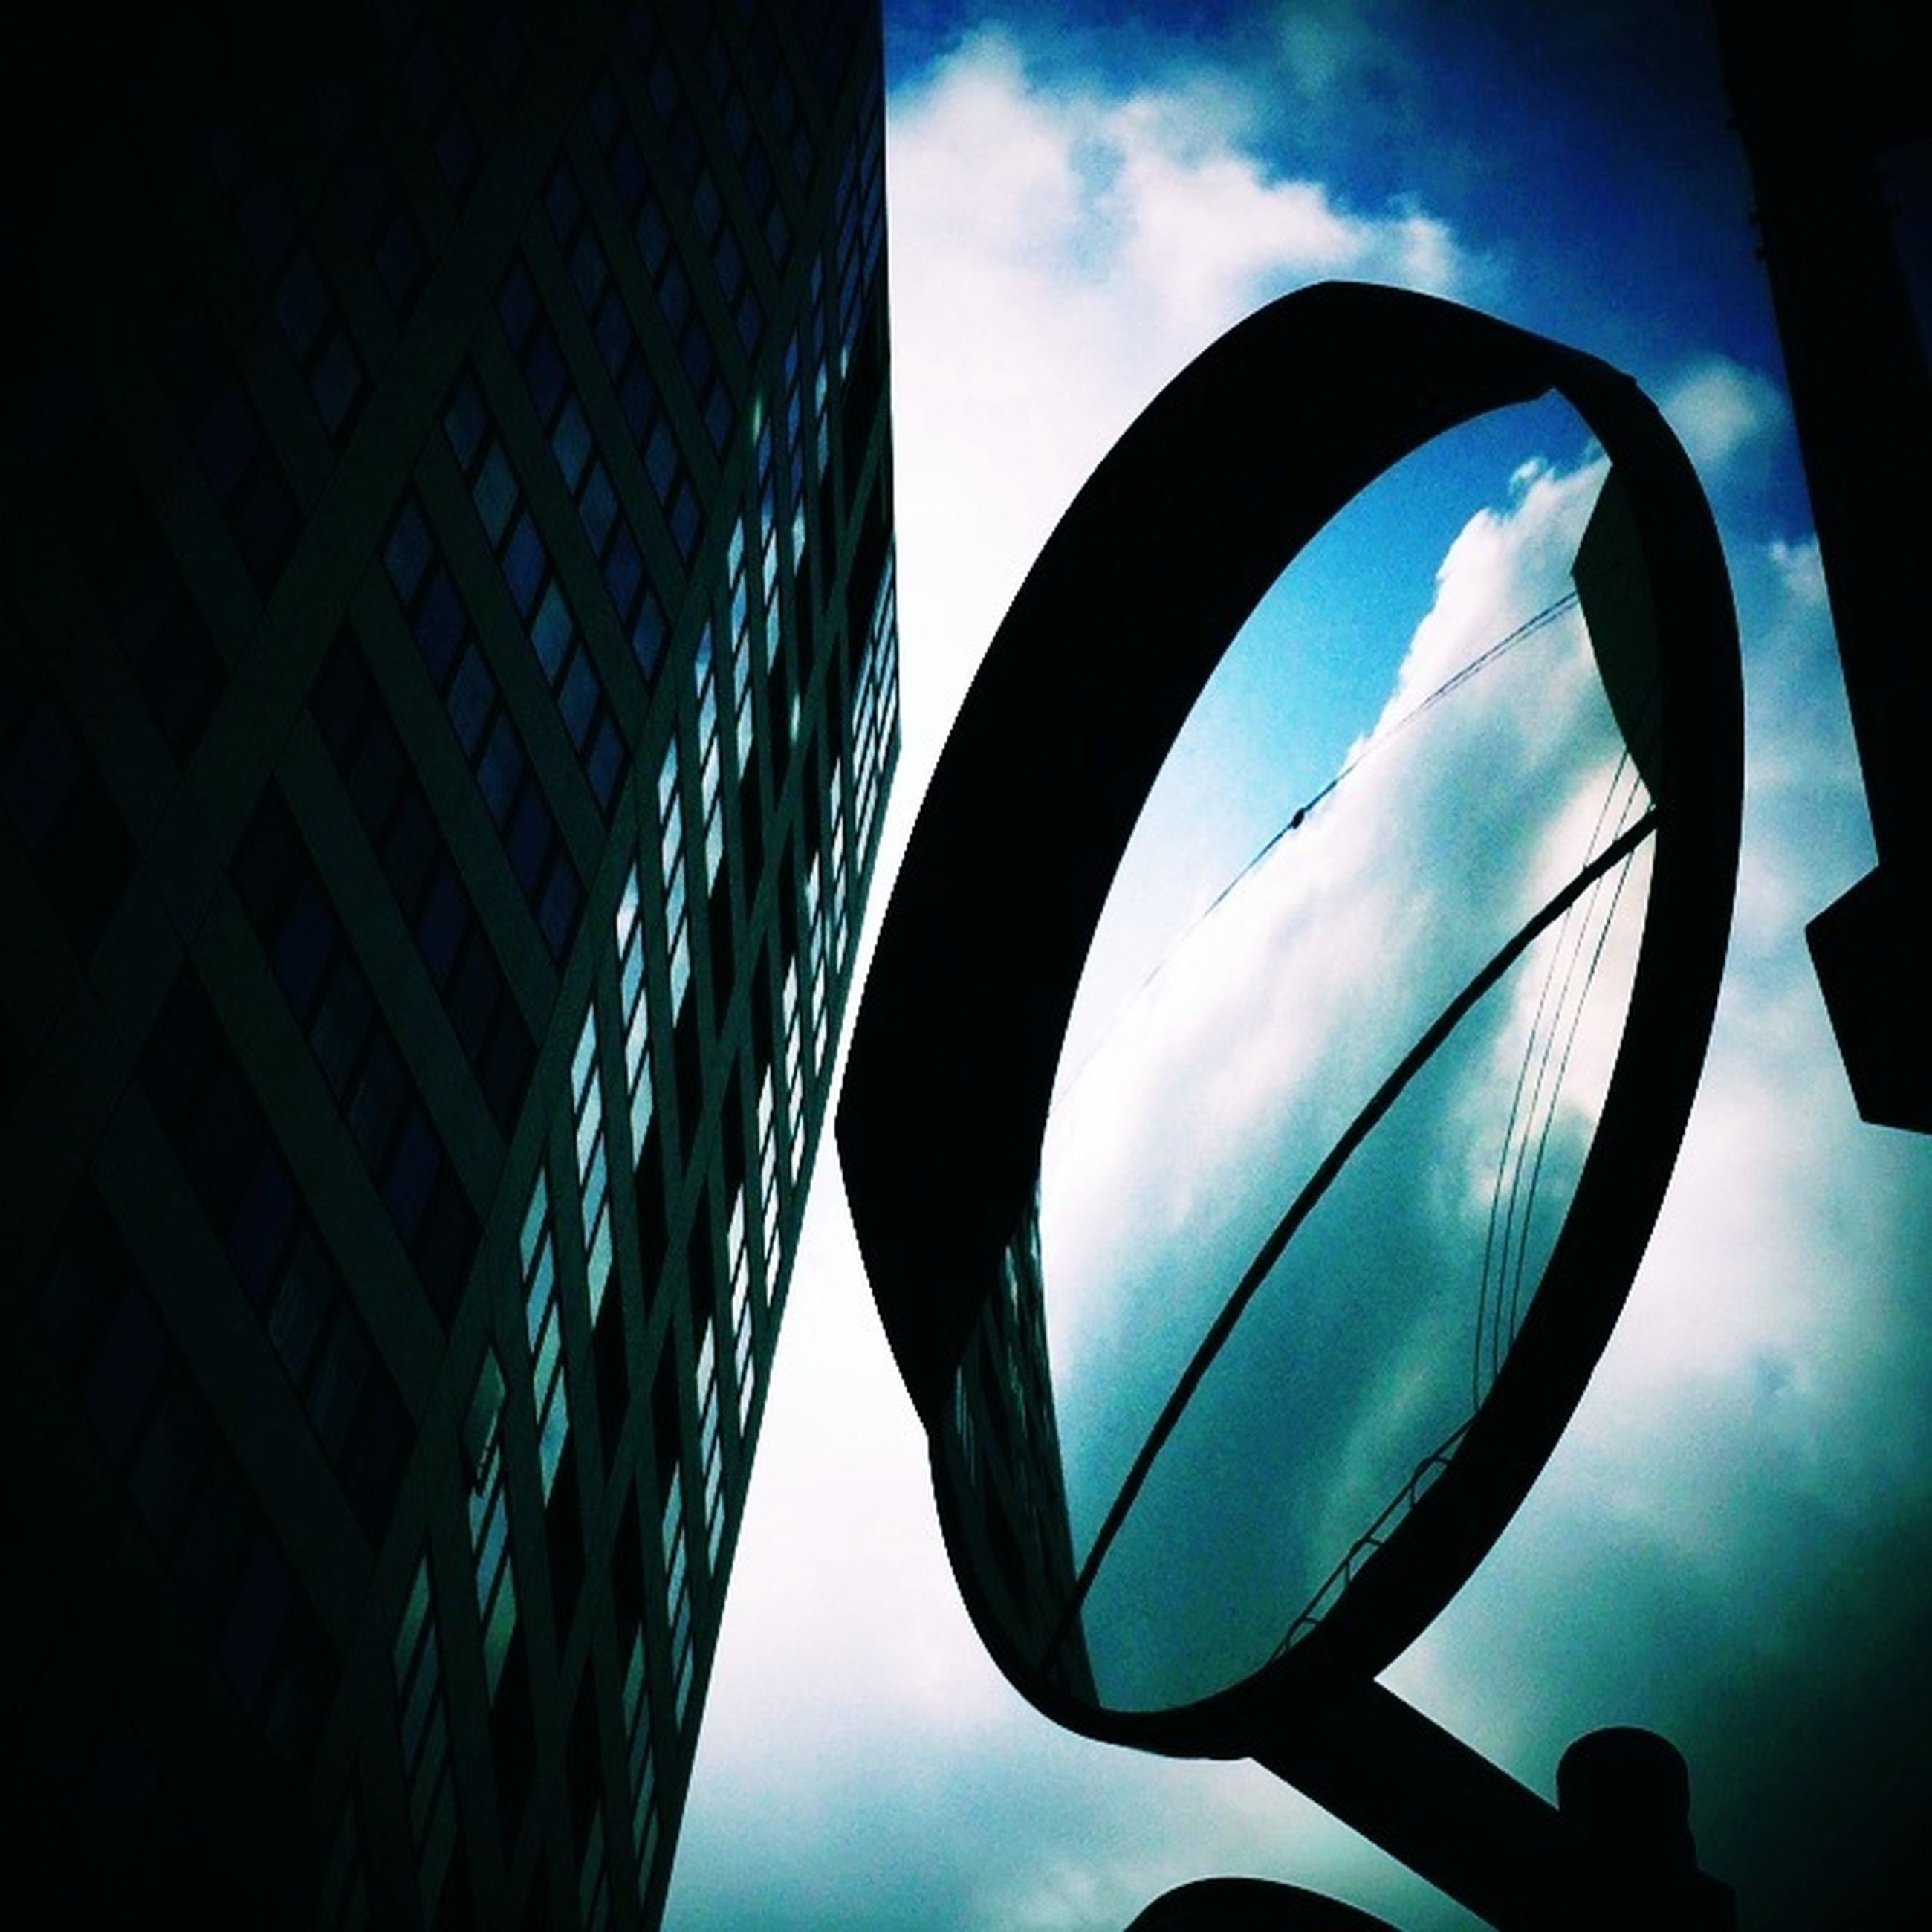 architecture, sky, built structure, building exterior, low angle view, window, reflection, cloud - sky, cloud, glass - material, building, city, modern, day, circle, no people, outdoors, transparent, blue, office building